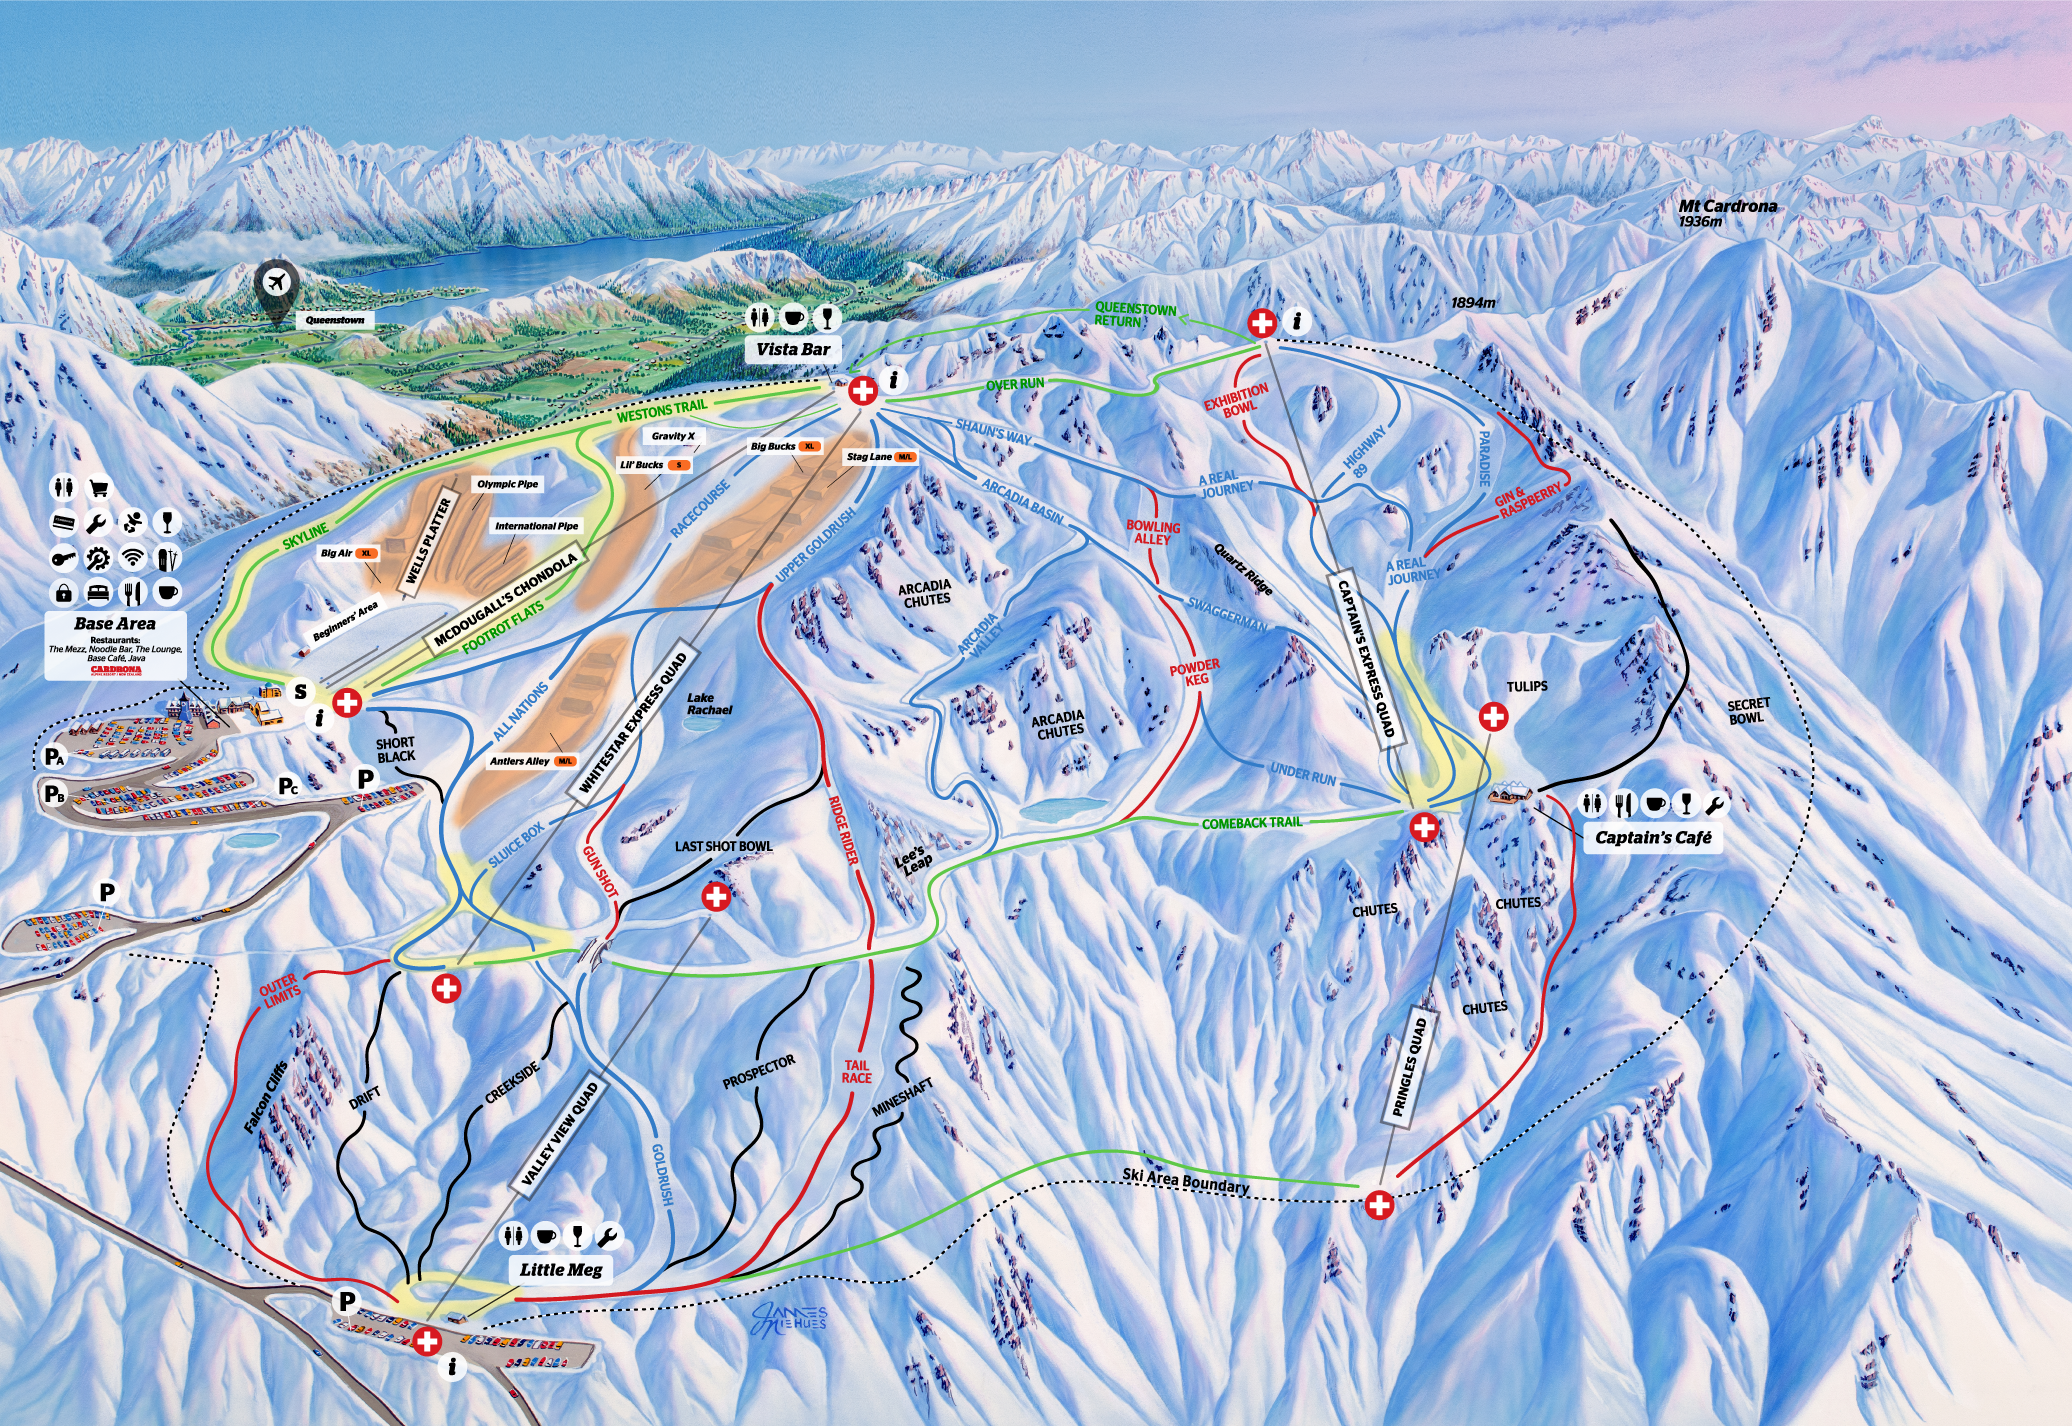 PROPOSED WINTER 2019 TRAIL MAP